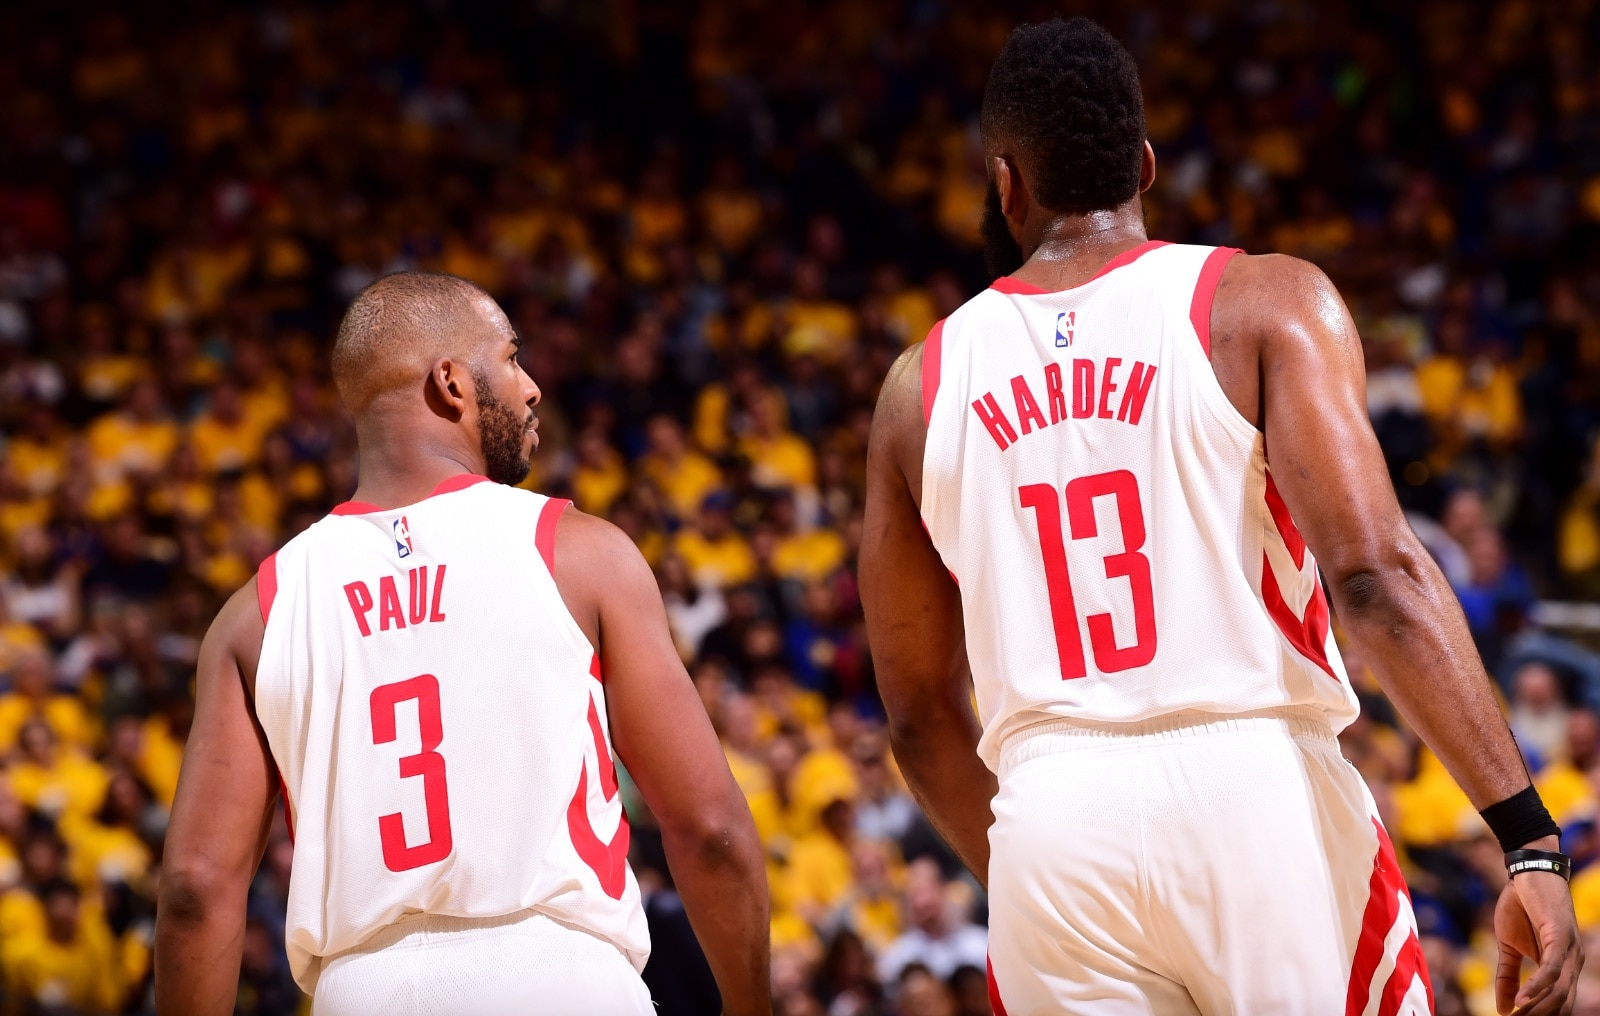 Chris Paul #3 and James Harden #13 of the Houston Rockets look on during Game Two of the Western Conference Semifinals of the 2019 NBA Playoffs against the Golden State Warriors on April 30, 2019 at ORACLE Arena in Oakland, California.